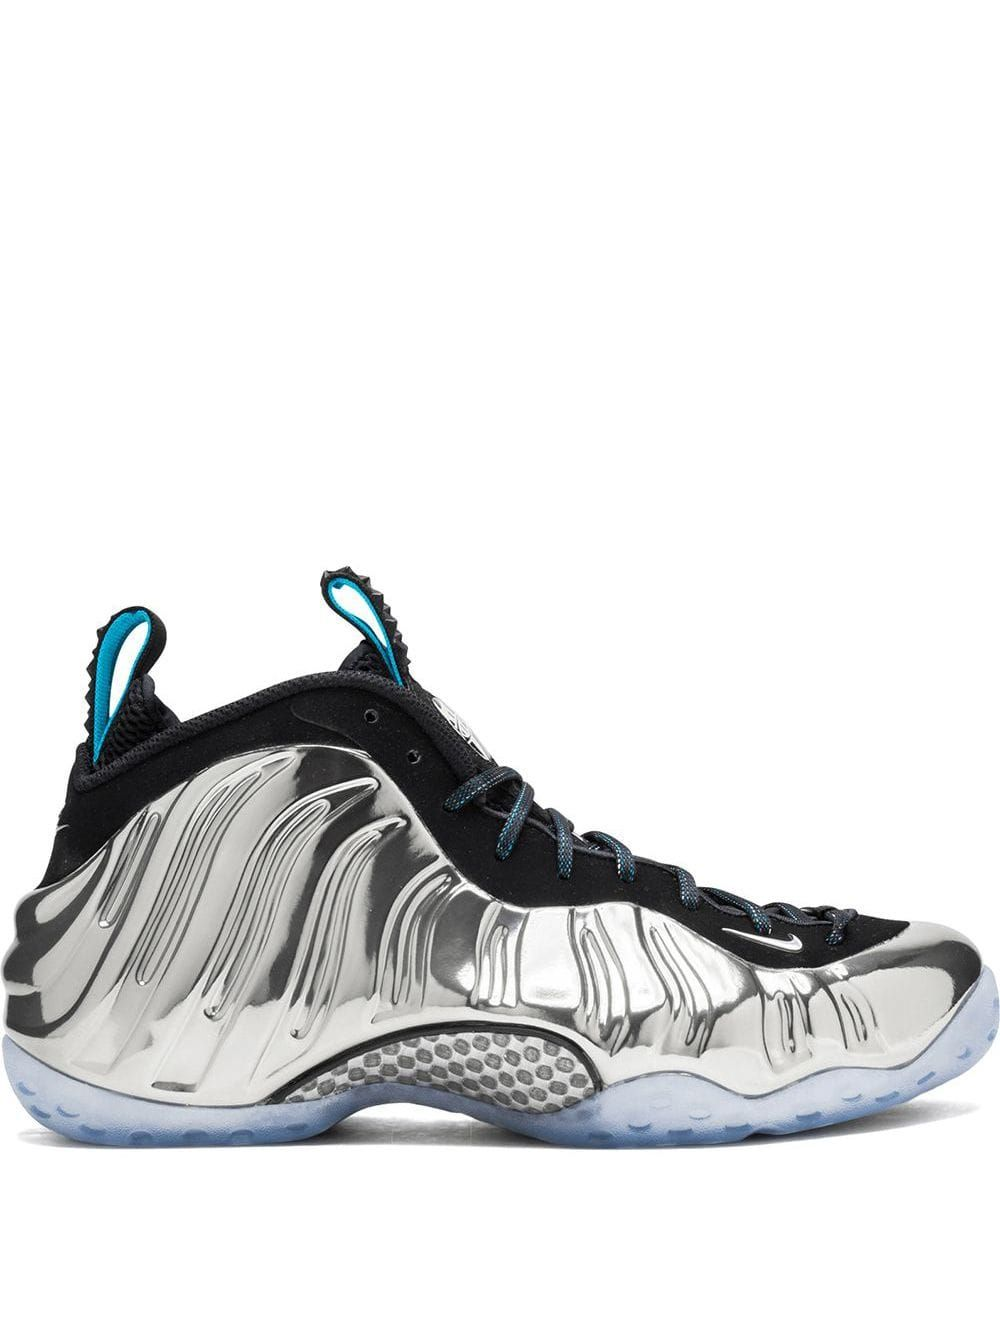 Penny for Thought Shirt for Foamposite One Albino Snakeskin ...